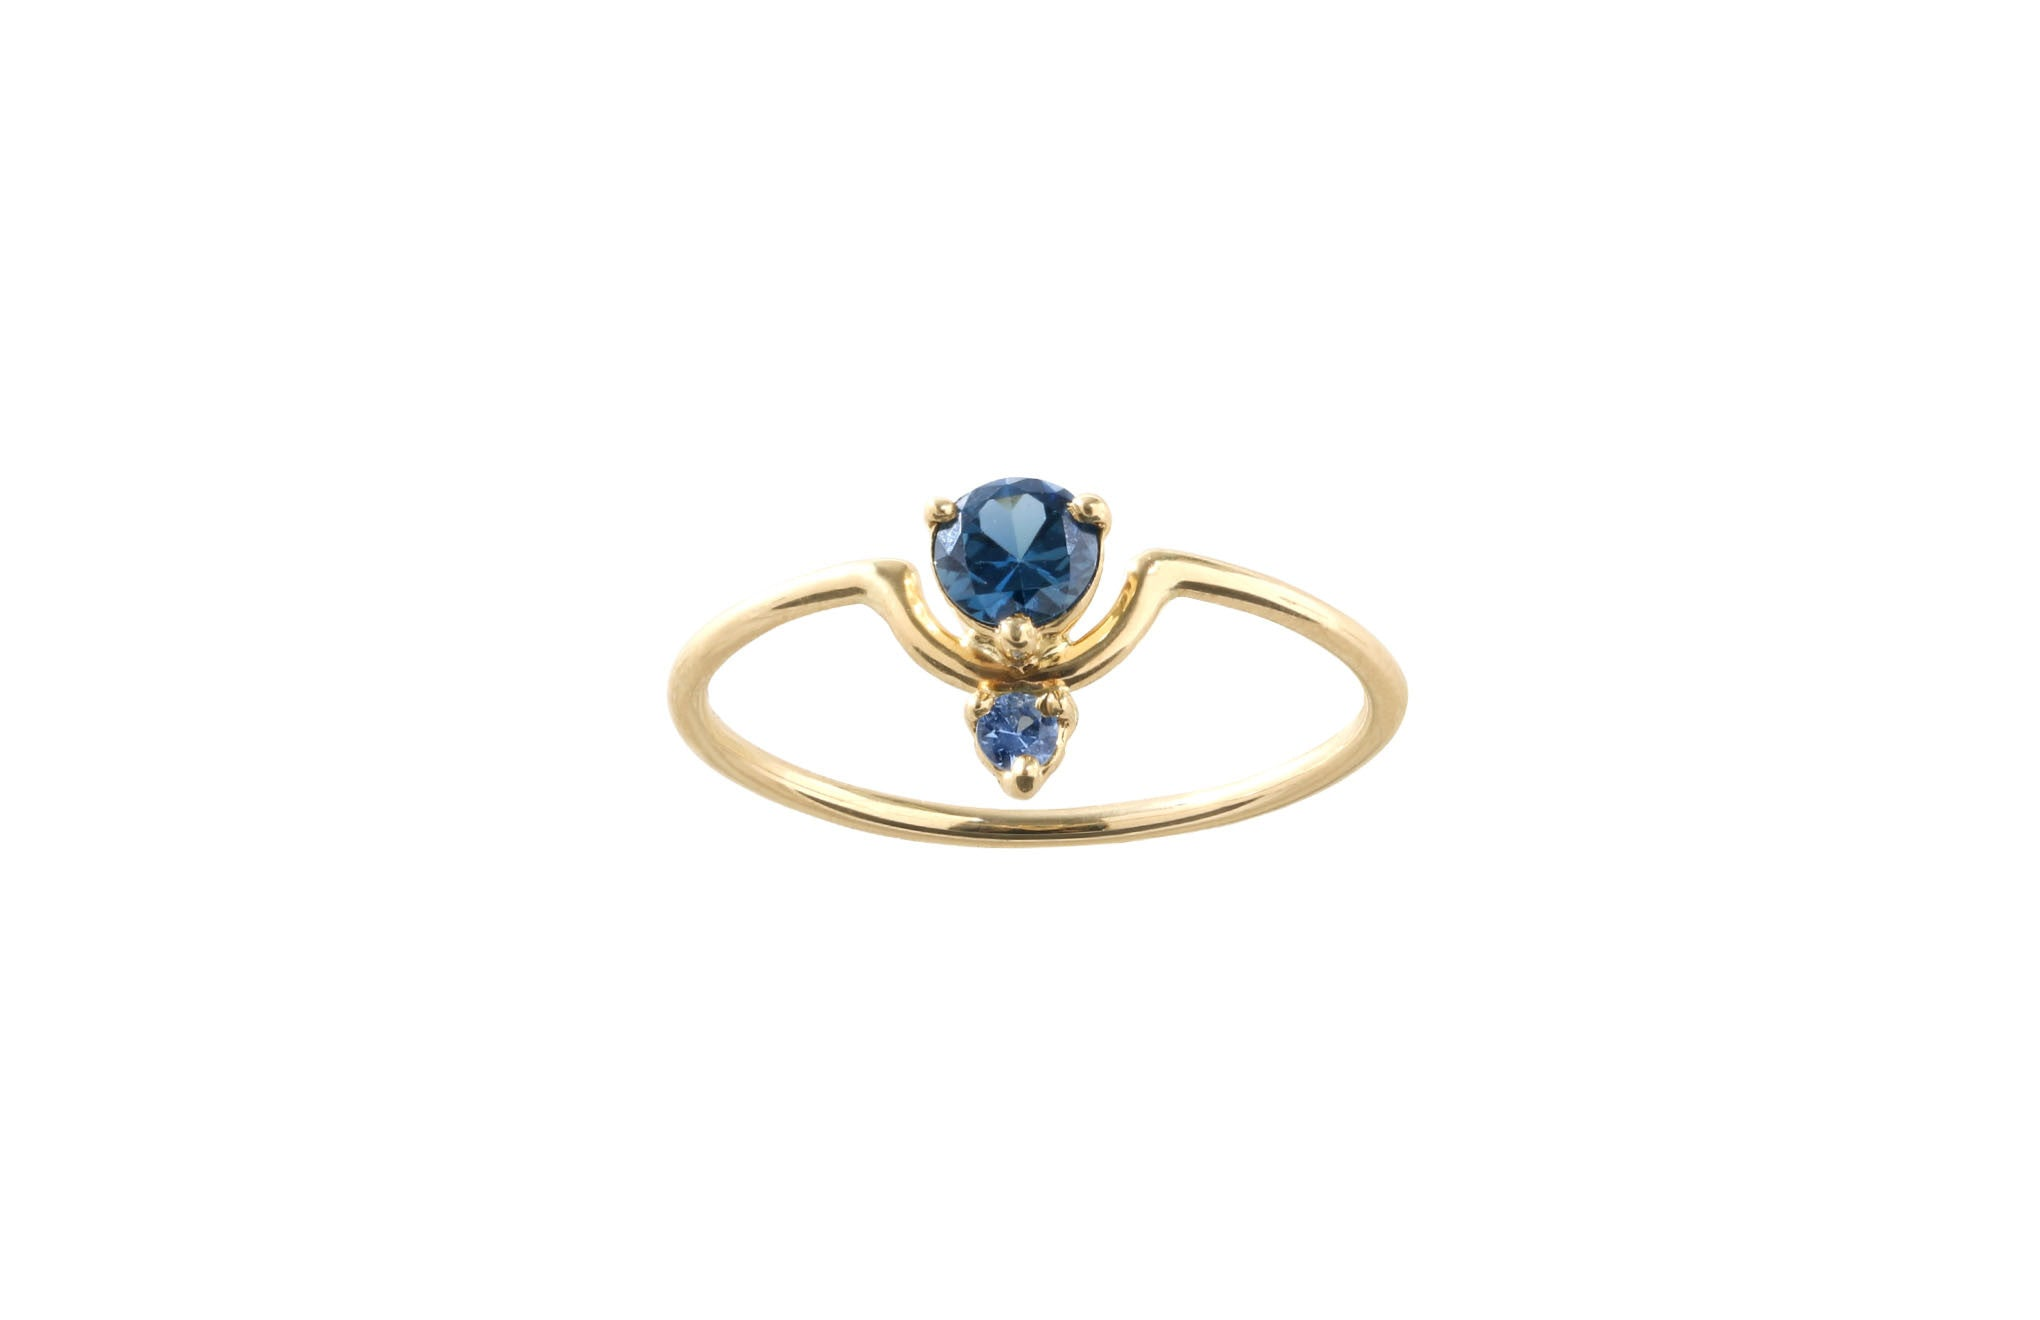 ideas blue dark amazing diamondswhite of gold files pic ring tiffany engagement hirsh kay trio the image lavender jewellery astonishing and sapphire editor ct styles rings tw